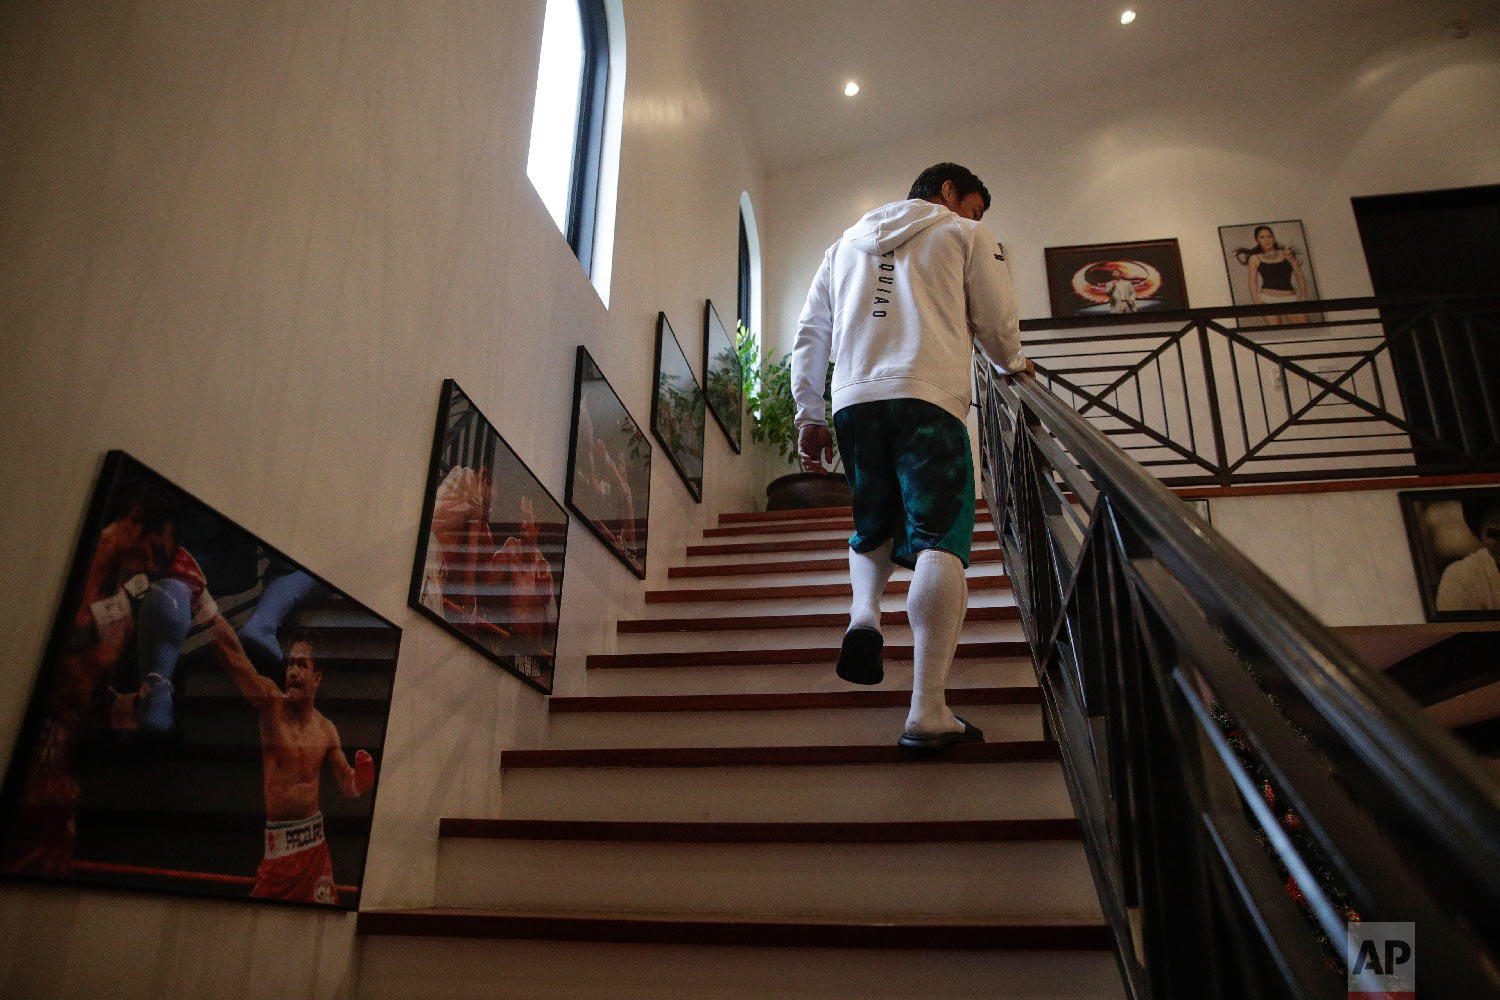 Boxer Manny Pacquiao walks up the steps to his bedroom for a nap following his morning run Jan. 14, 2019, in Los Angeles. (AP Photo/Jae C. Hong)